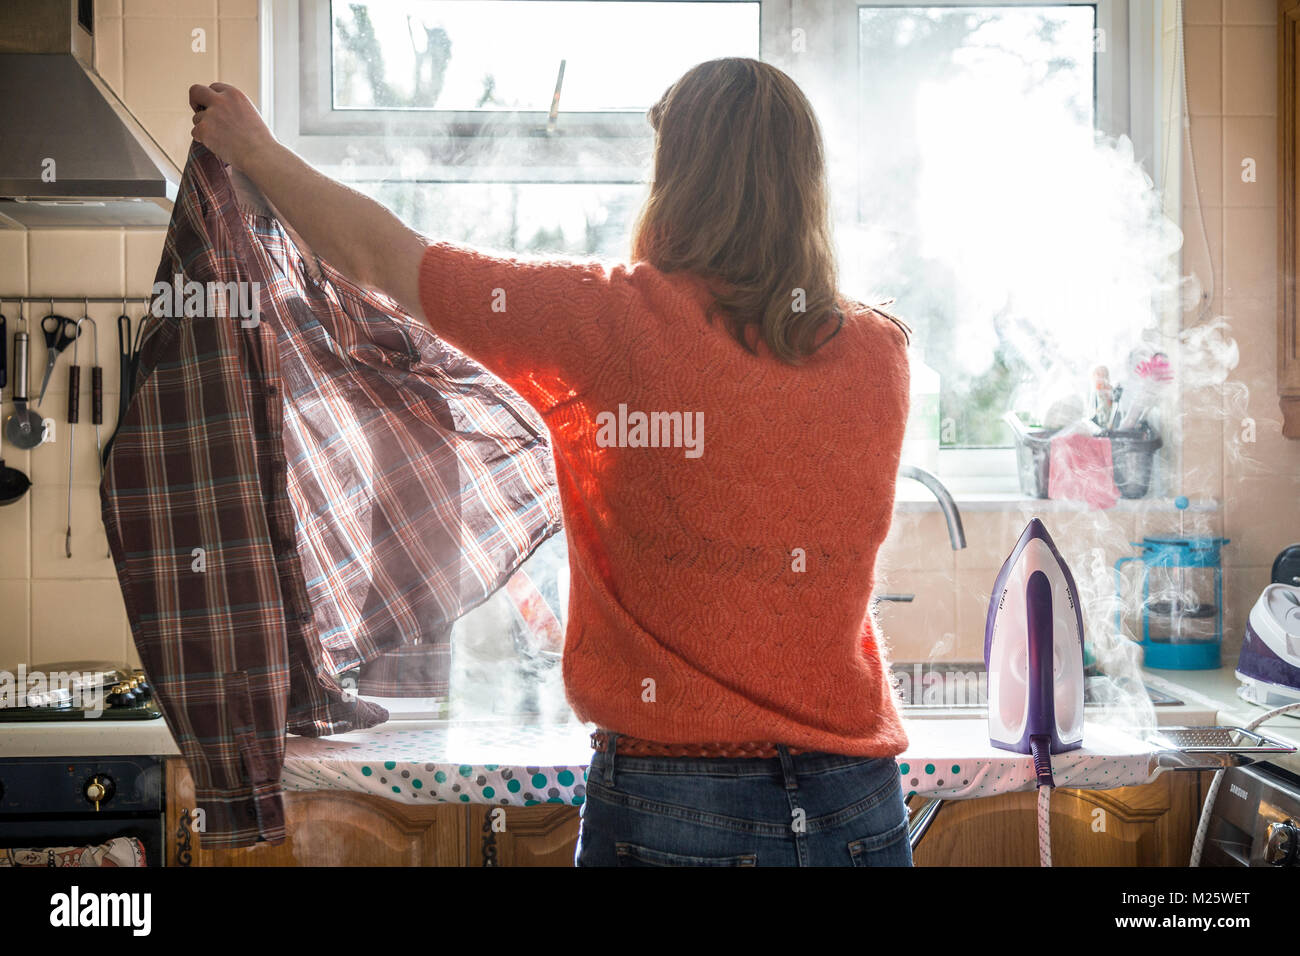 young mum irons check shirt in Kitchen,activity or task of ironing clothes, sheets,tailoring backstitching,A female - Stock Image